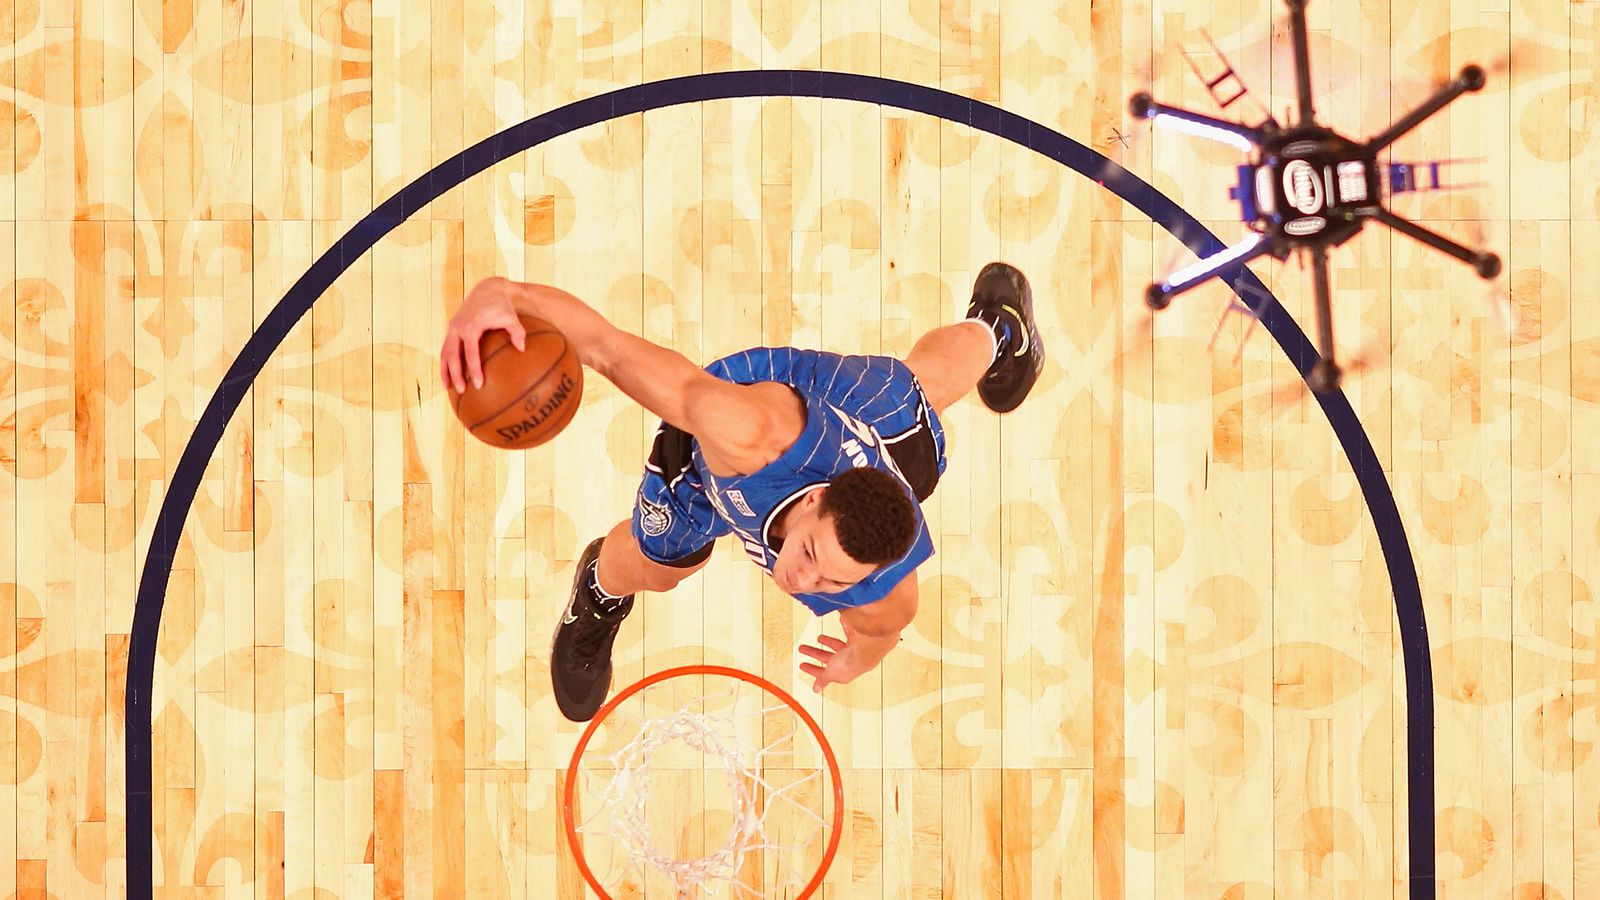 An Intel Drone Got the Assist on a Vicious Dunk at the NBA's Slam Dunk Contest